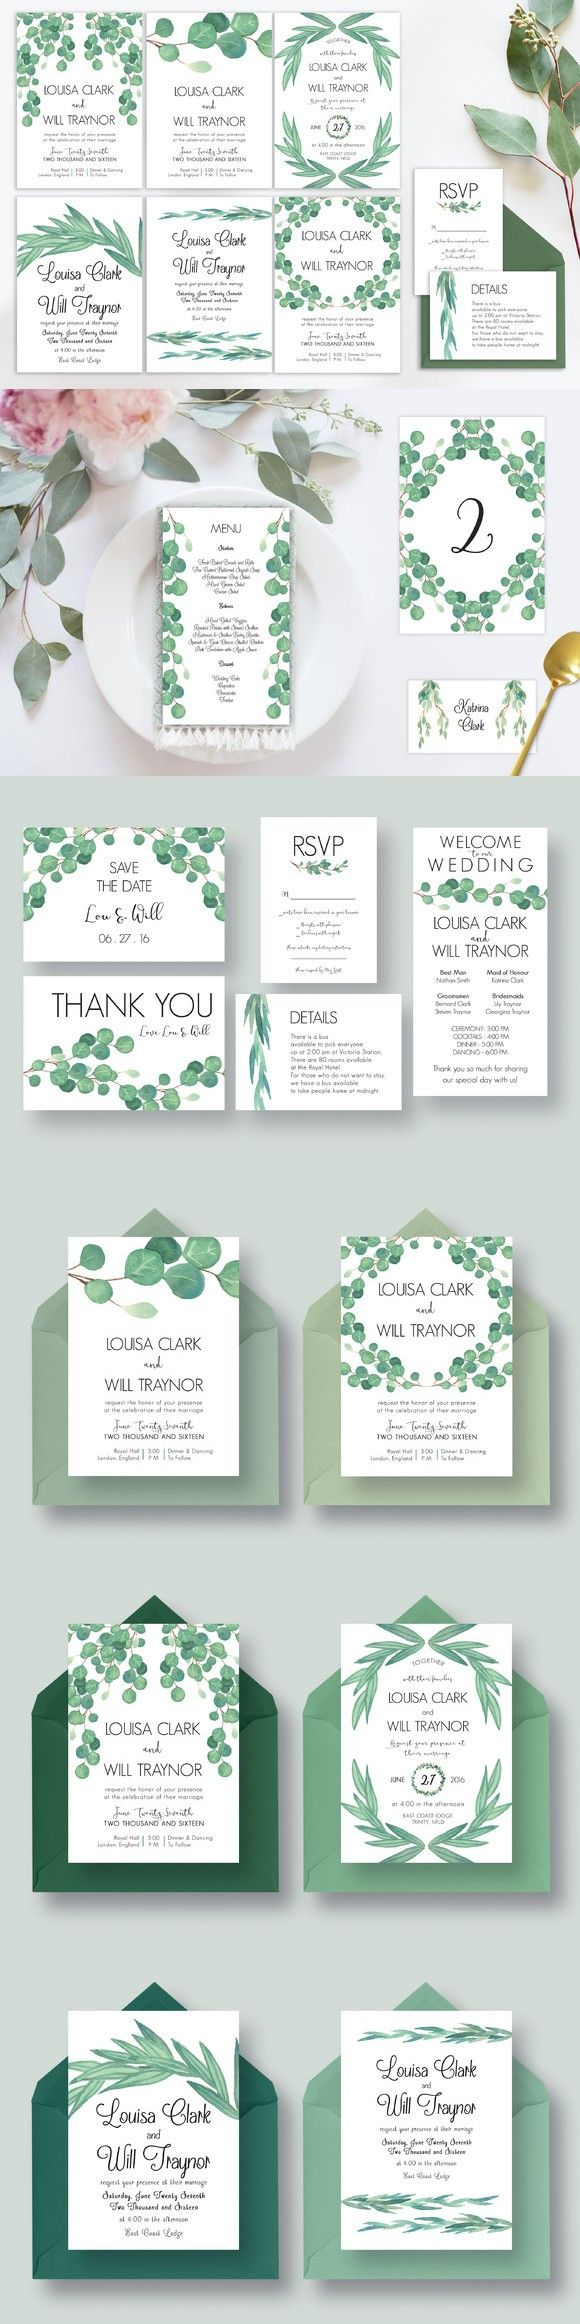 wedding invitation label templates%0A Botanical Wedding Detail Card Printable Garden by PucciPaperie   Wedding  Stationary   Pinterest   Gardens  Cards and Wedding